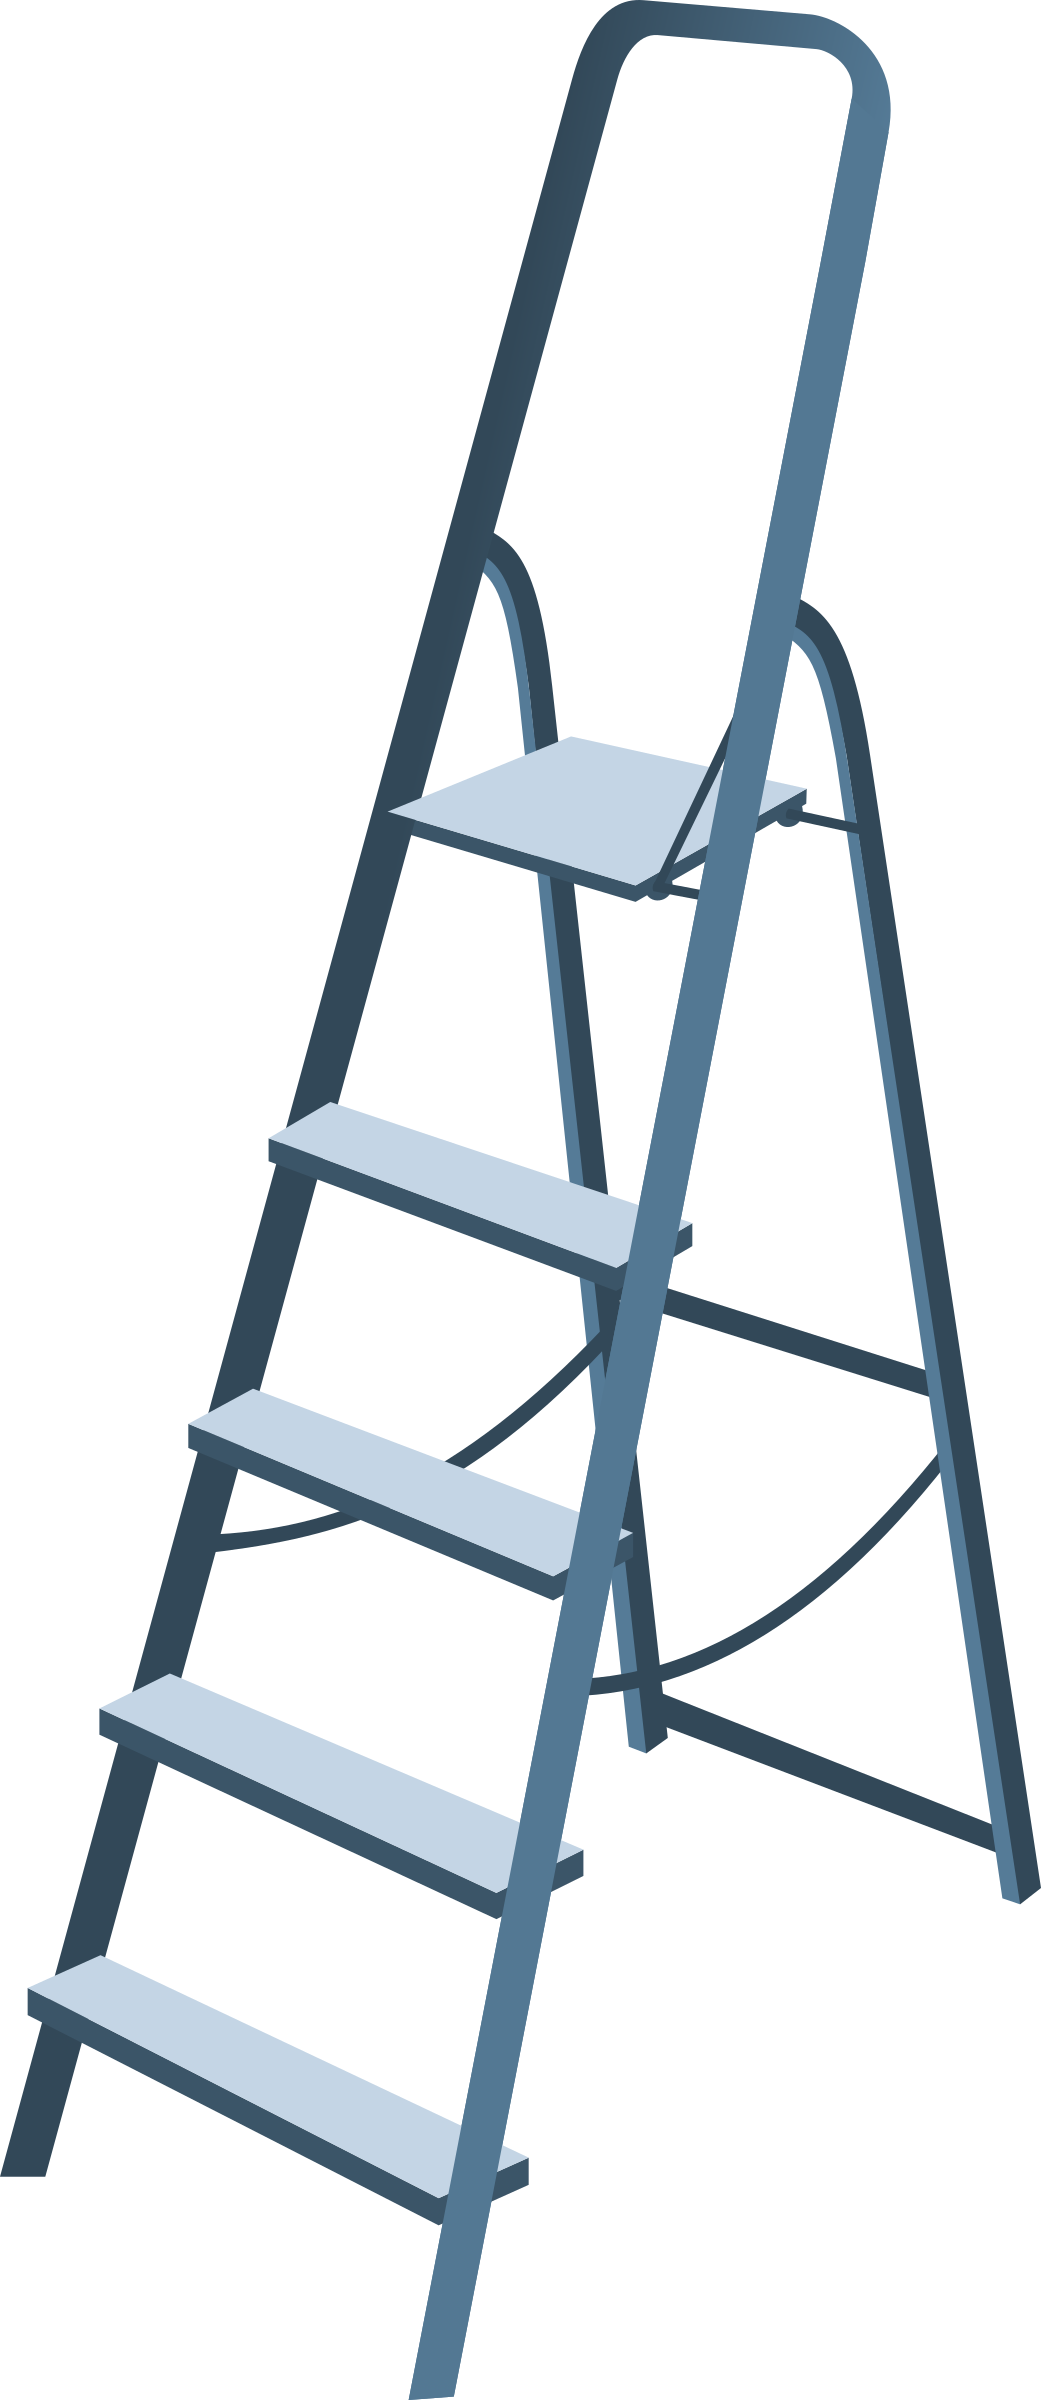 1041x2400 Step Ladder Clip Art Www.galleryhip